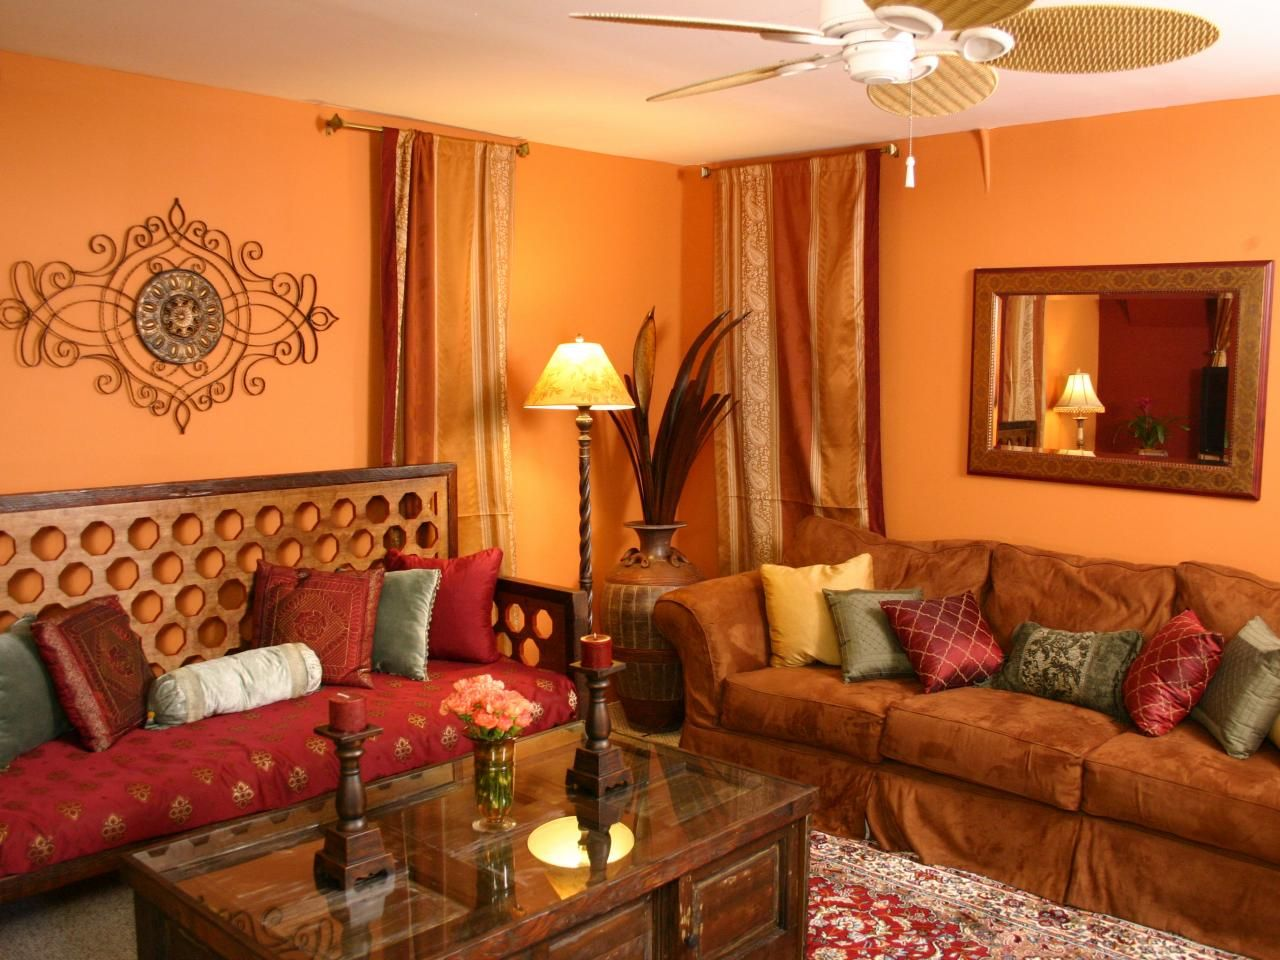 Wonderful This Eclectic Living Room Features A Rich Orange And Red Color Palette,  Making The Space